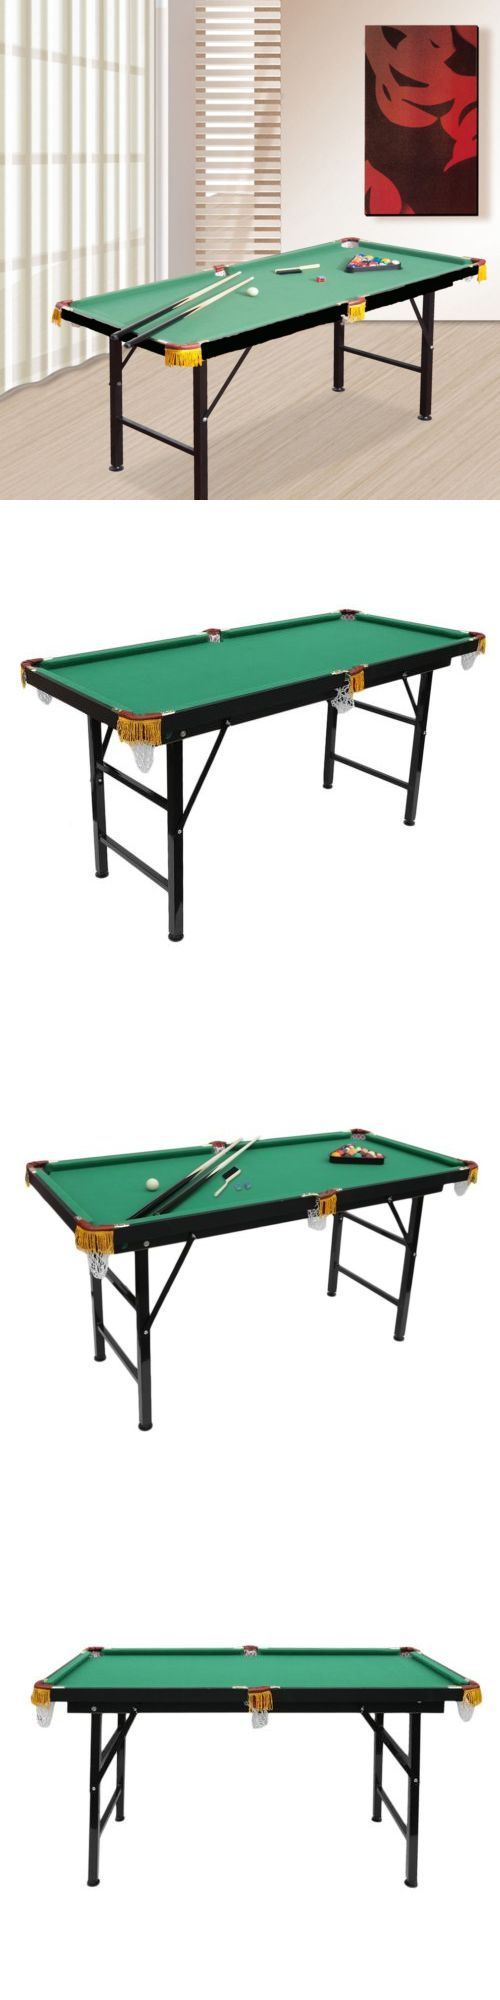 Other Billiards 1292: 55 Portable Billiard Pool Table Top Indoor Game Balls Cues Board Billiards Set -> BUY IT NOW ONLY: $116.98 on eBay!